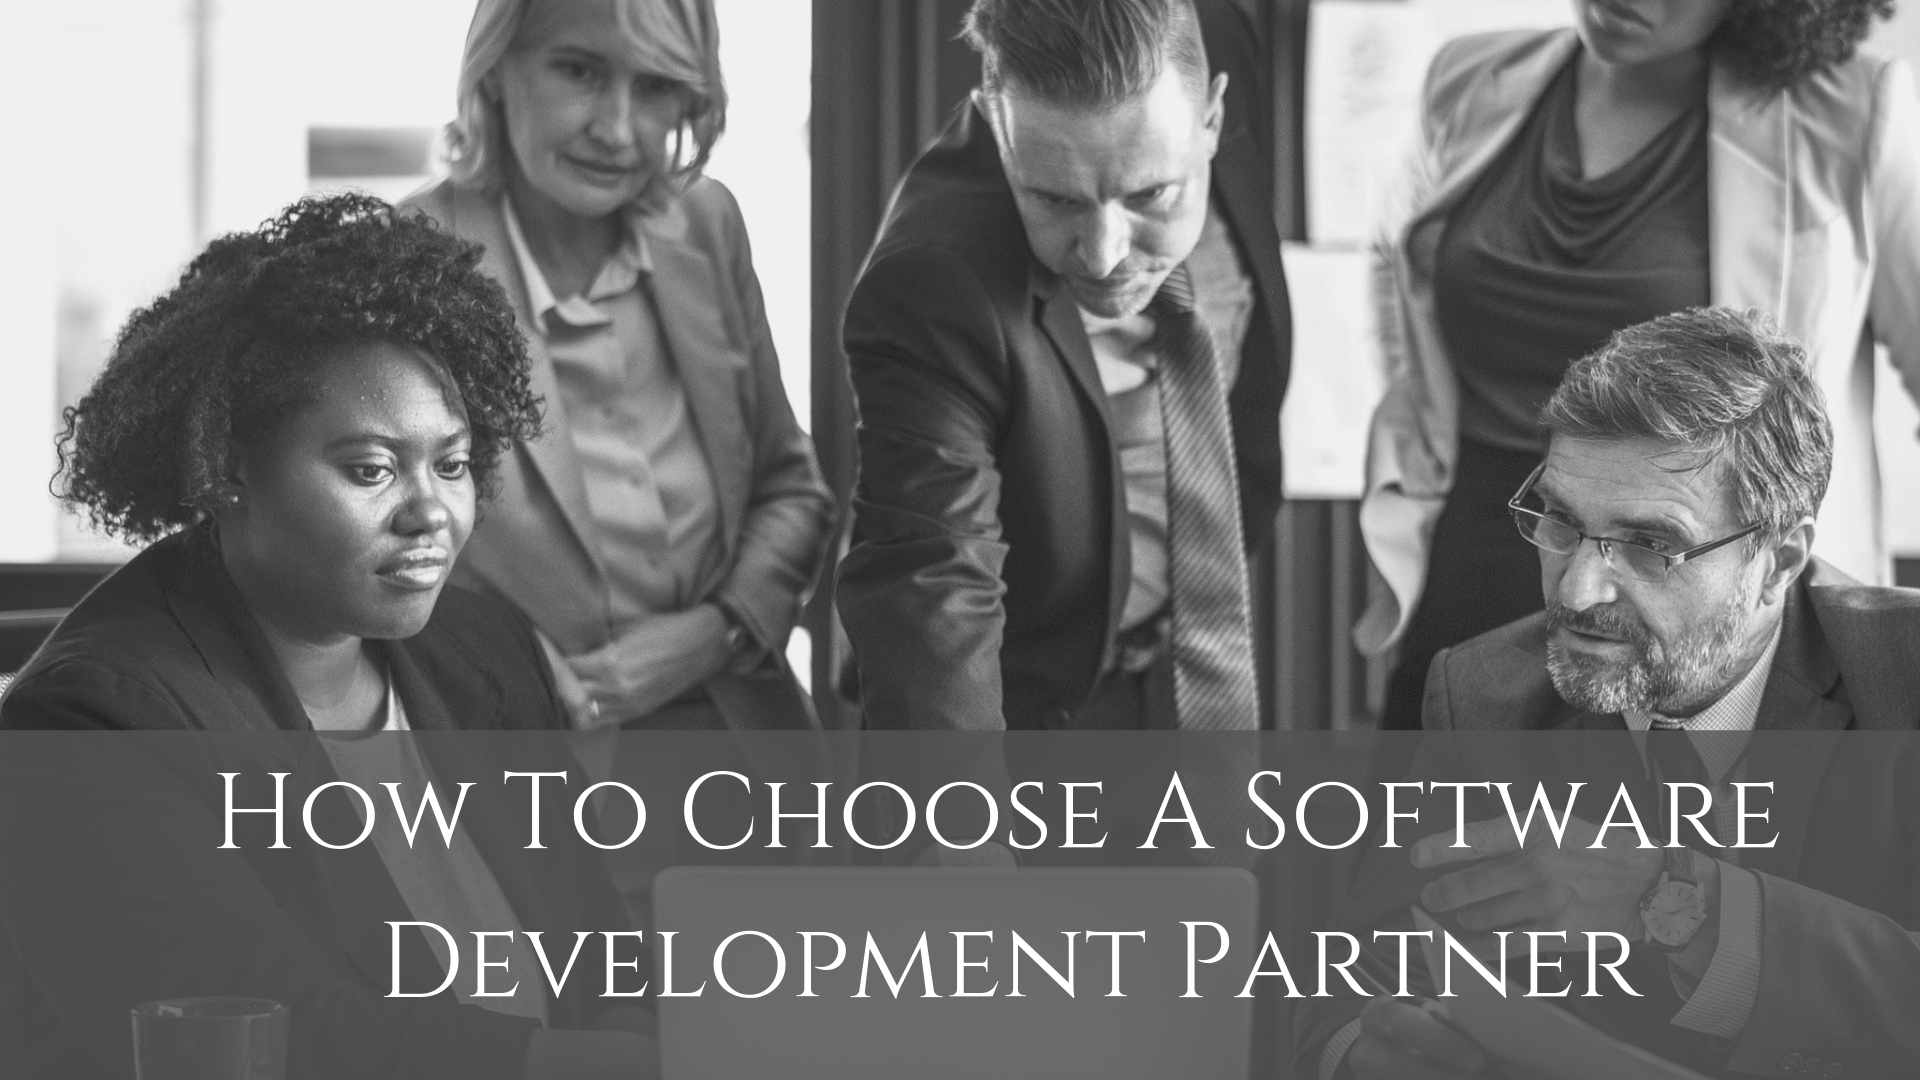 How To Choose A Software Development Partner